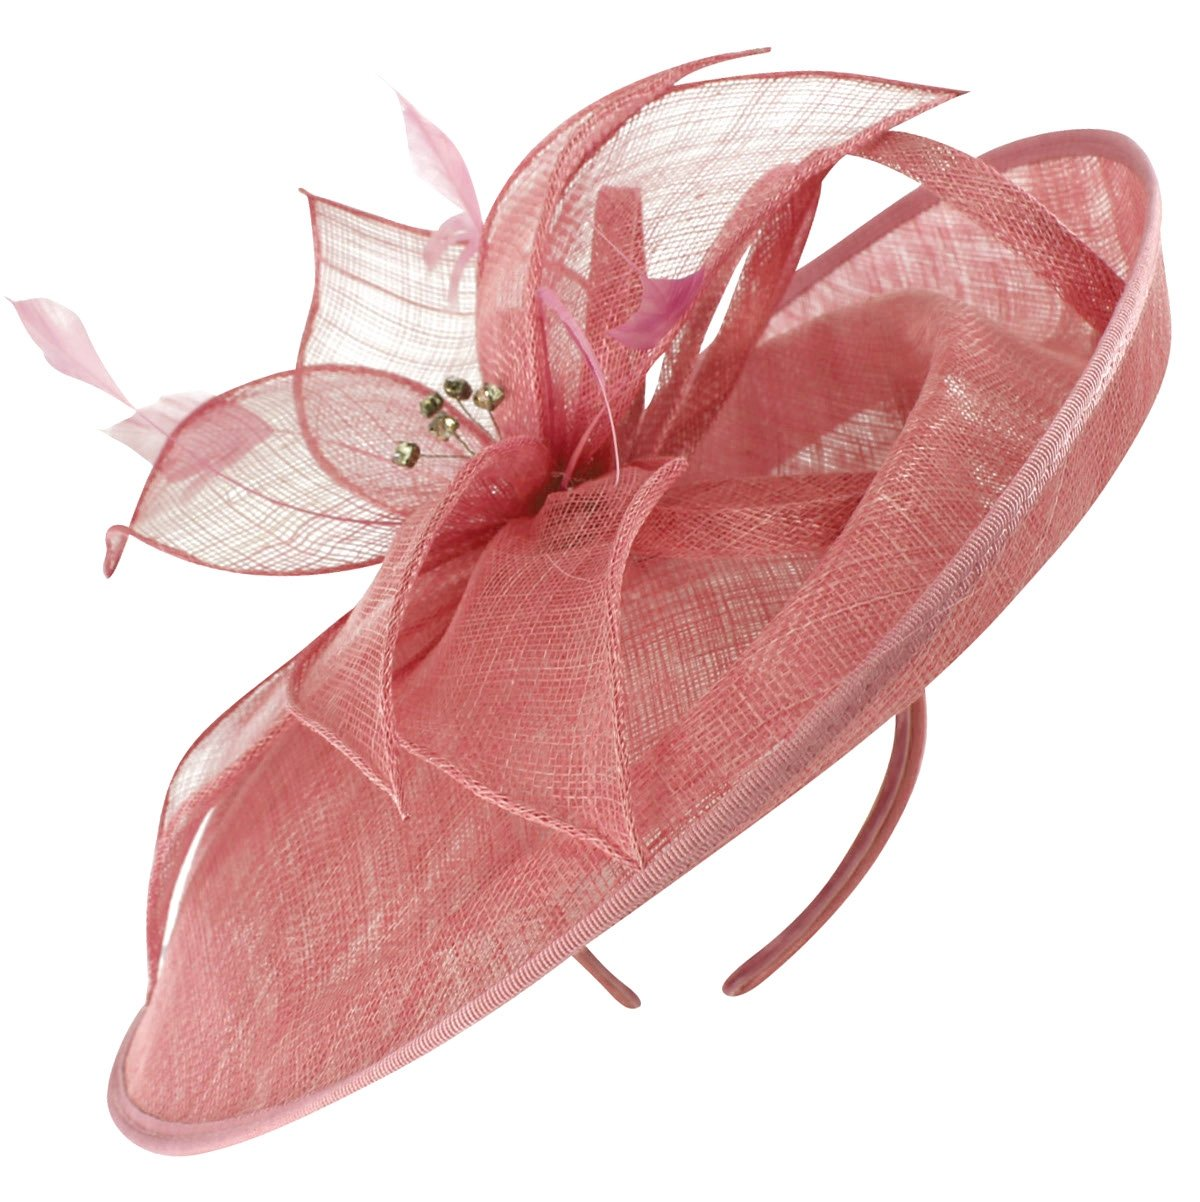 Failsworth Millinery Events Disc Headpiece In Freesia, Size: One Size by Failsworth Millinery